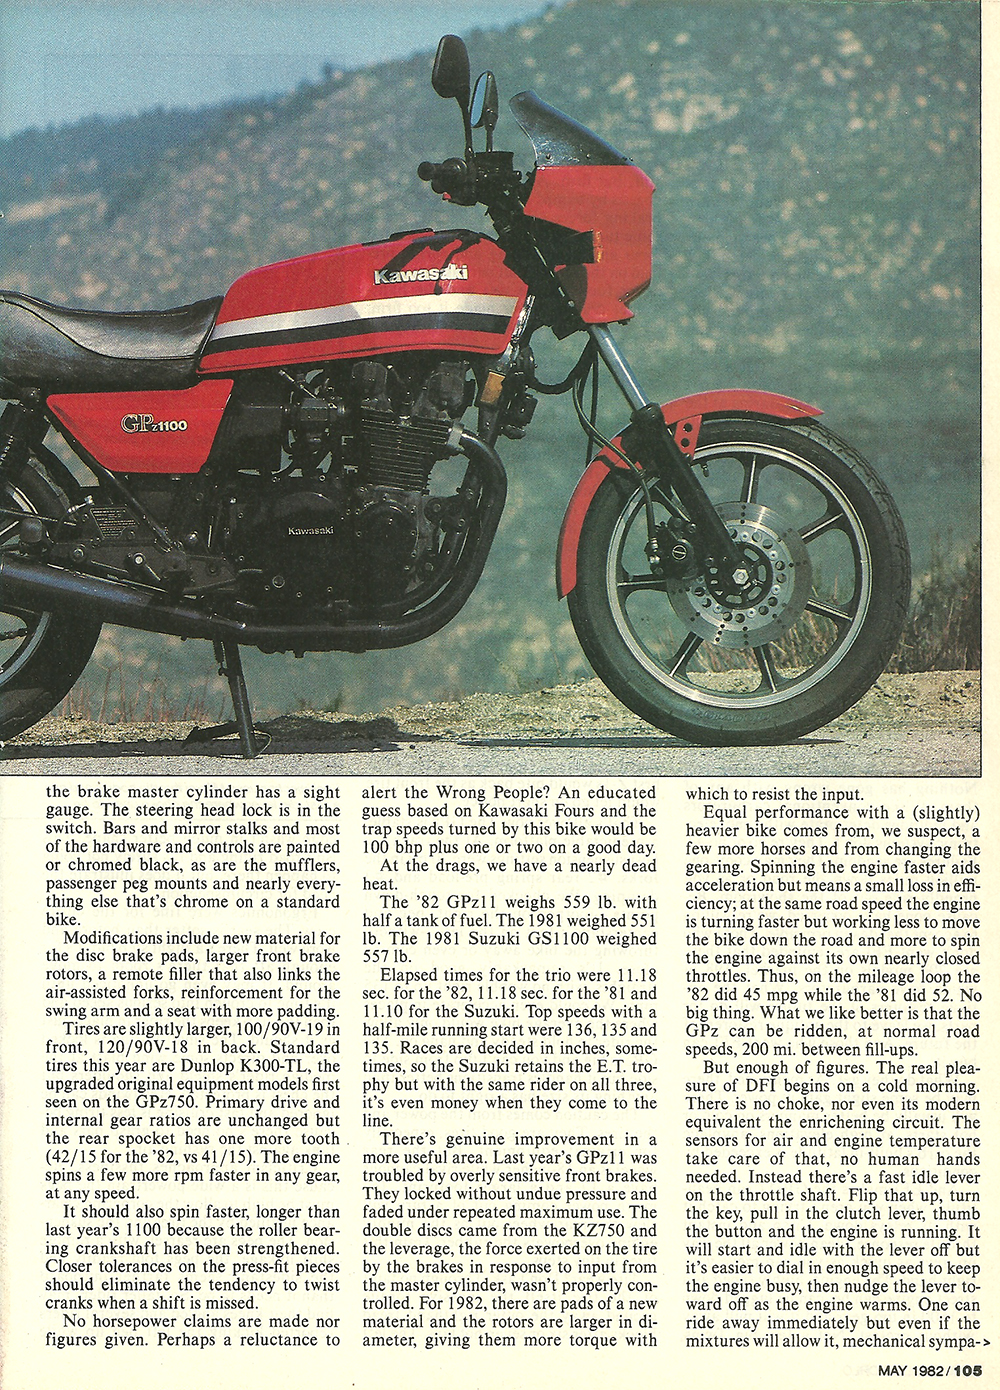 1982 Kawasaki GPz1100 road test 03.jpg